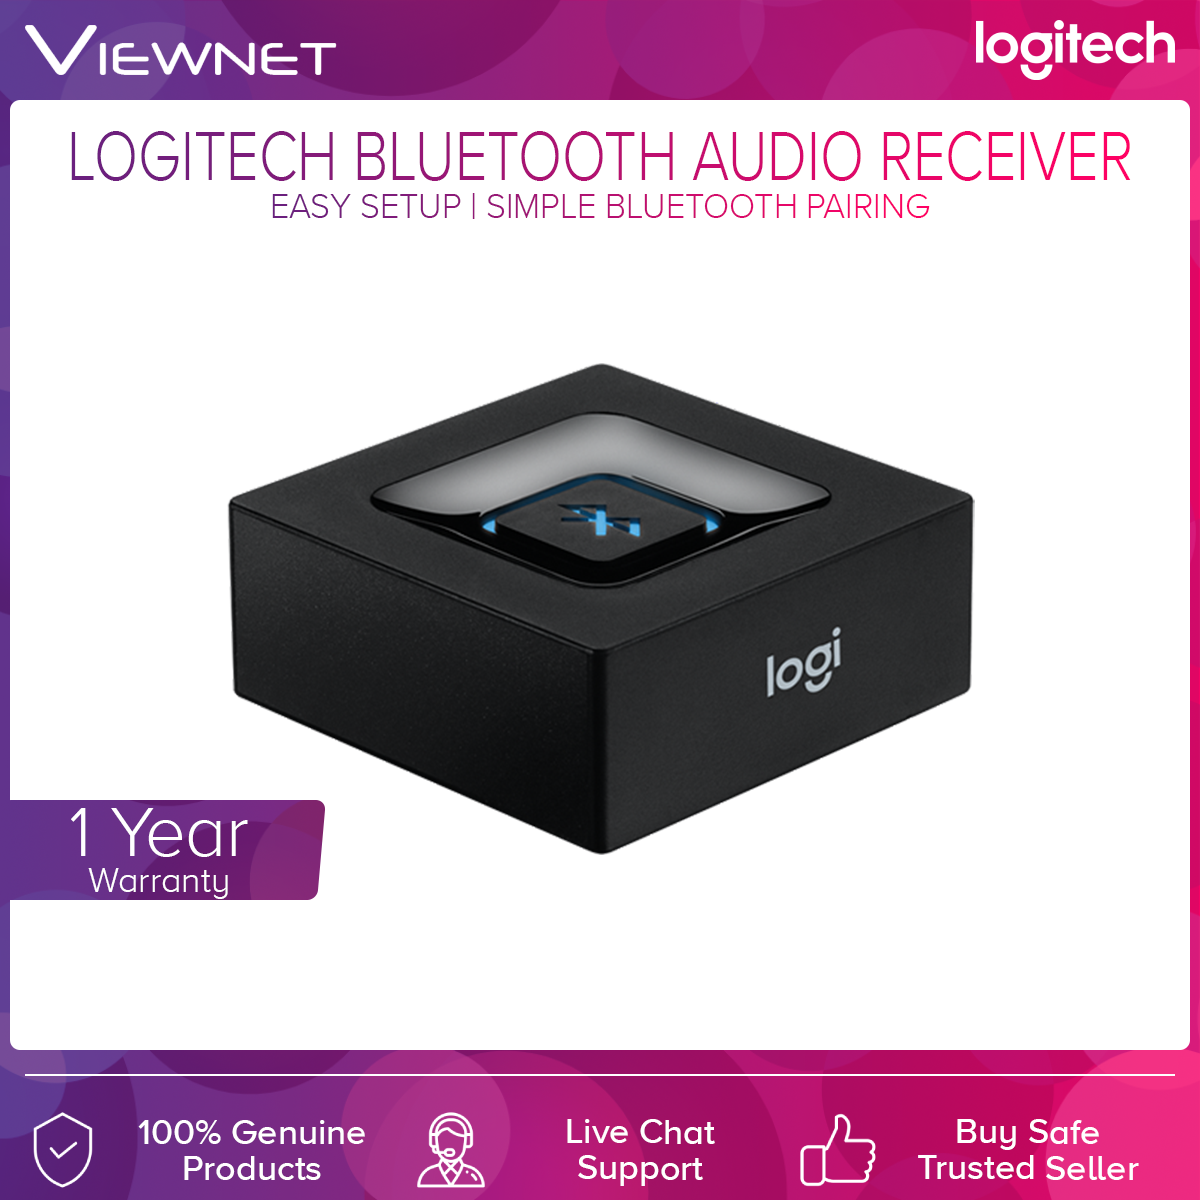 Logitech Bluetooth Audio Receiver with Simple Bluetooth pairing, Easy Setup, Pair Up To 2 Device